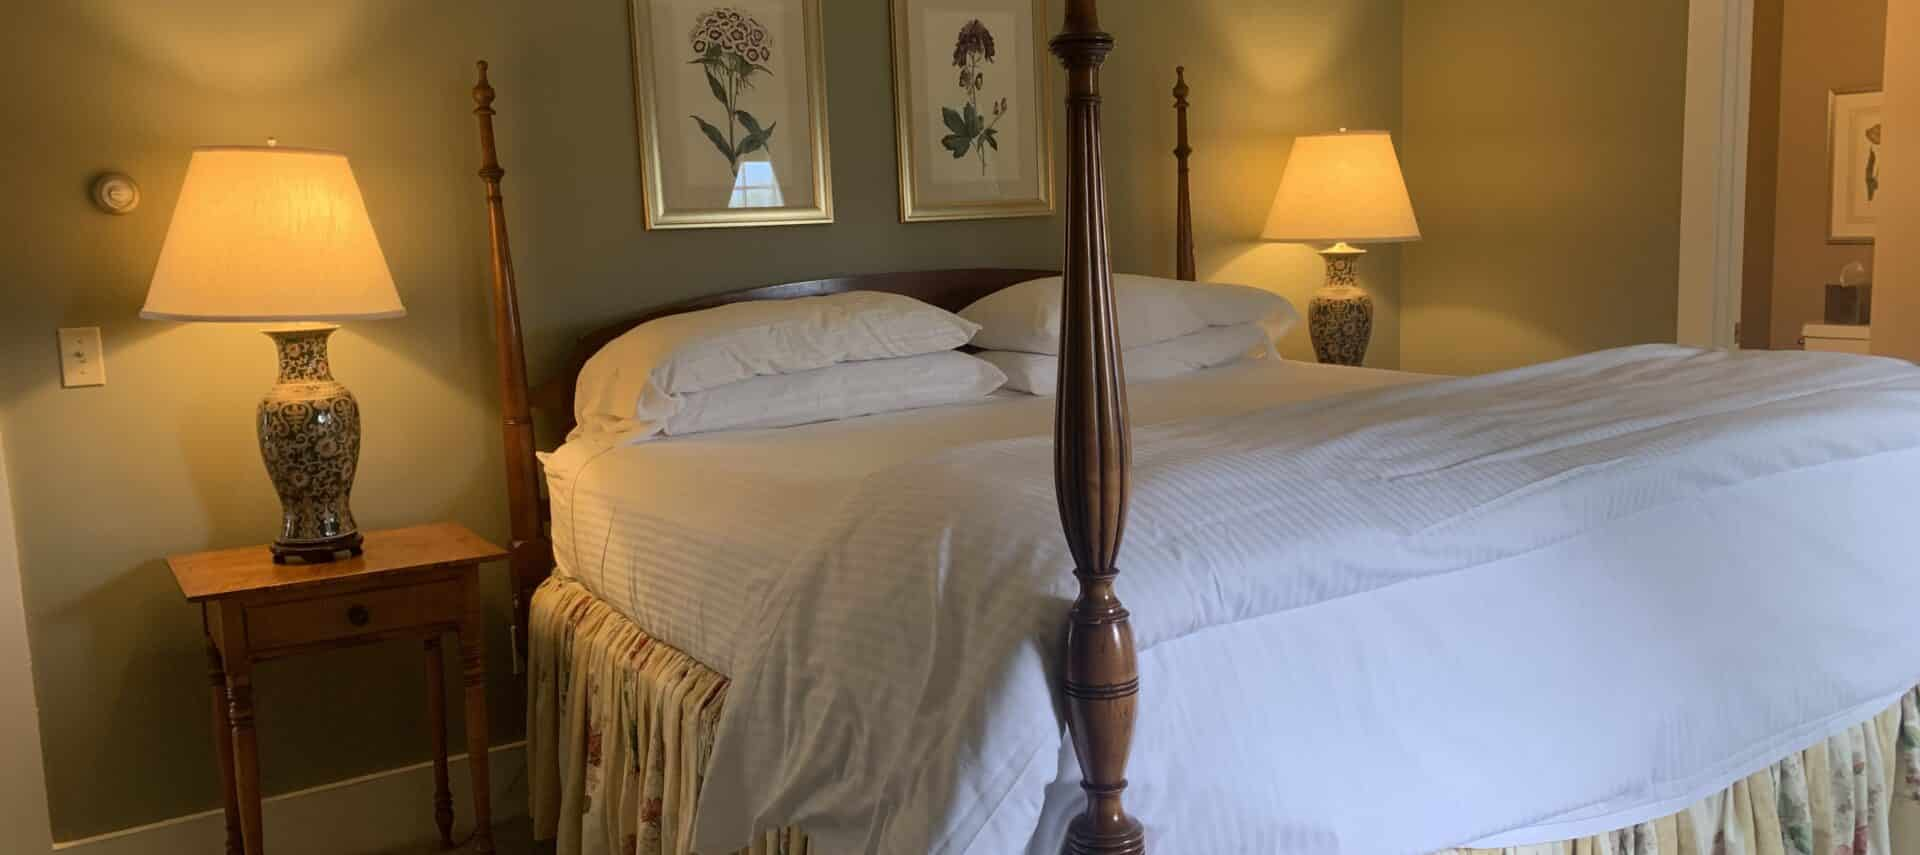 The Pierrepont four pofster king bed